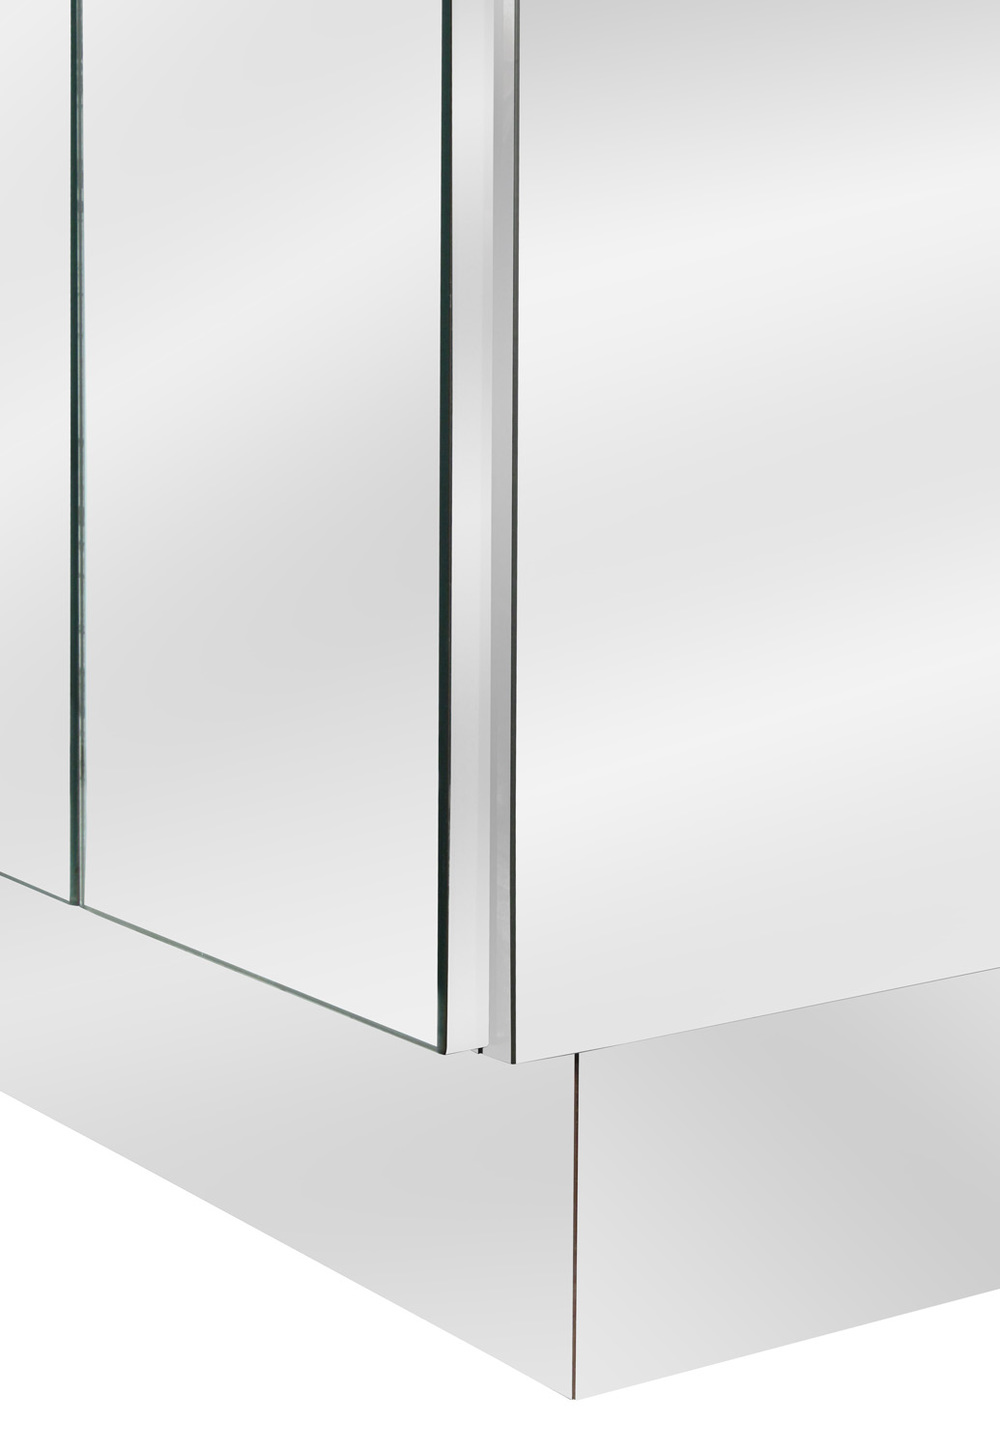 Ello 35 2 dr mirrored cabinet43 detail4 hires.jpg